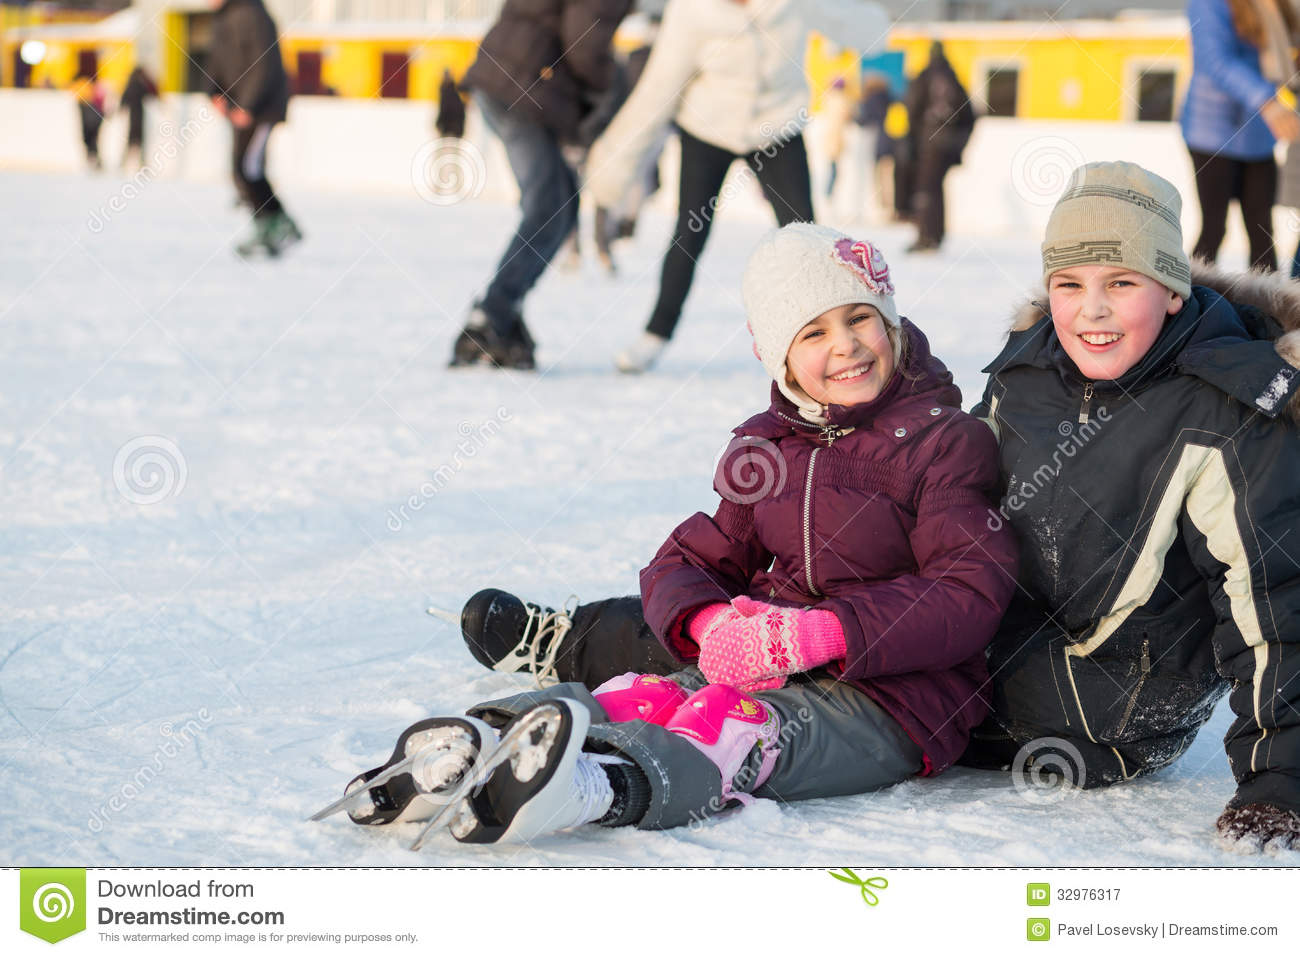 Brother and sister together fell while skating